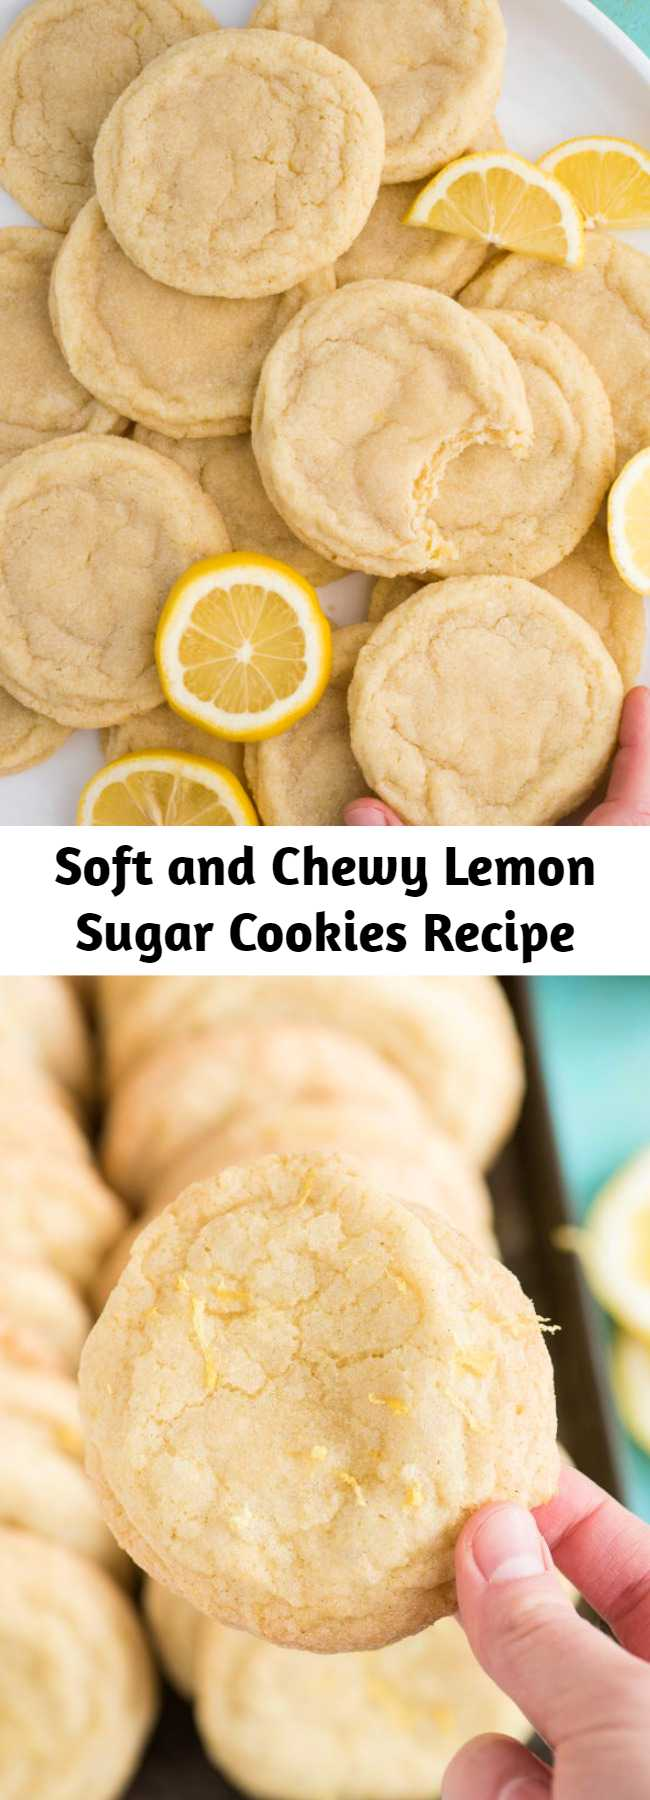 Soft and Chewy Lemon Cookies are a crowd favorite cookie that you can make anytime of the year. These lemon sugar cookies are thick and chewy and easy to freeze. Easy to make in one bowl with fresh lemon and everyday ingredients. #lemoncookies #sugarcookies #cookies